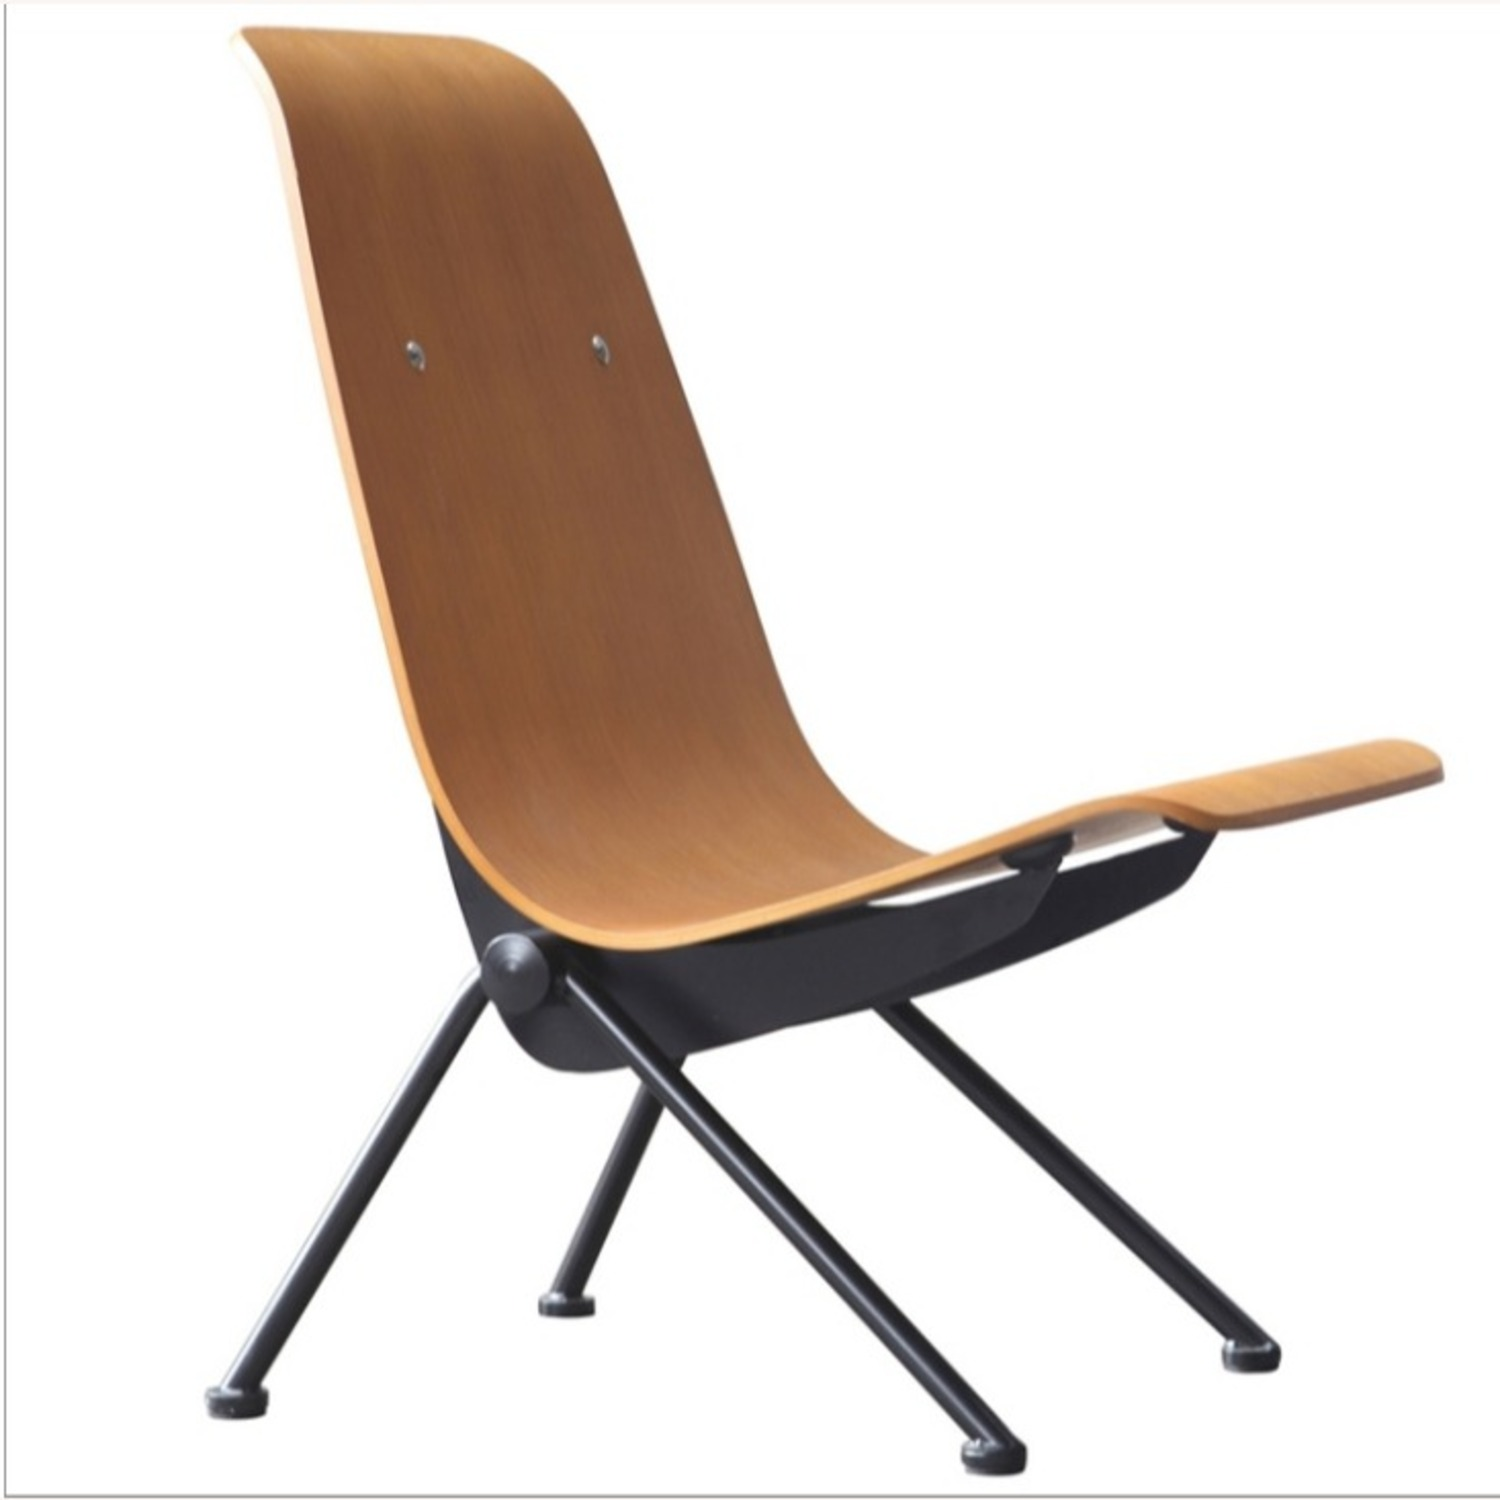 Contemporary Side Chair Crafted In Walnut Plywood - image-0